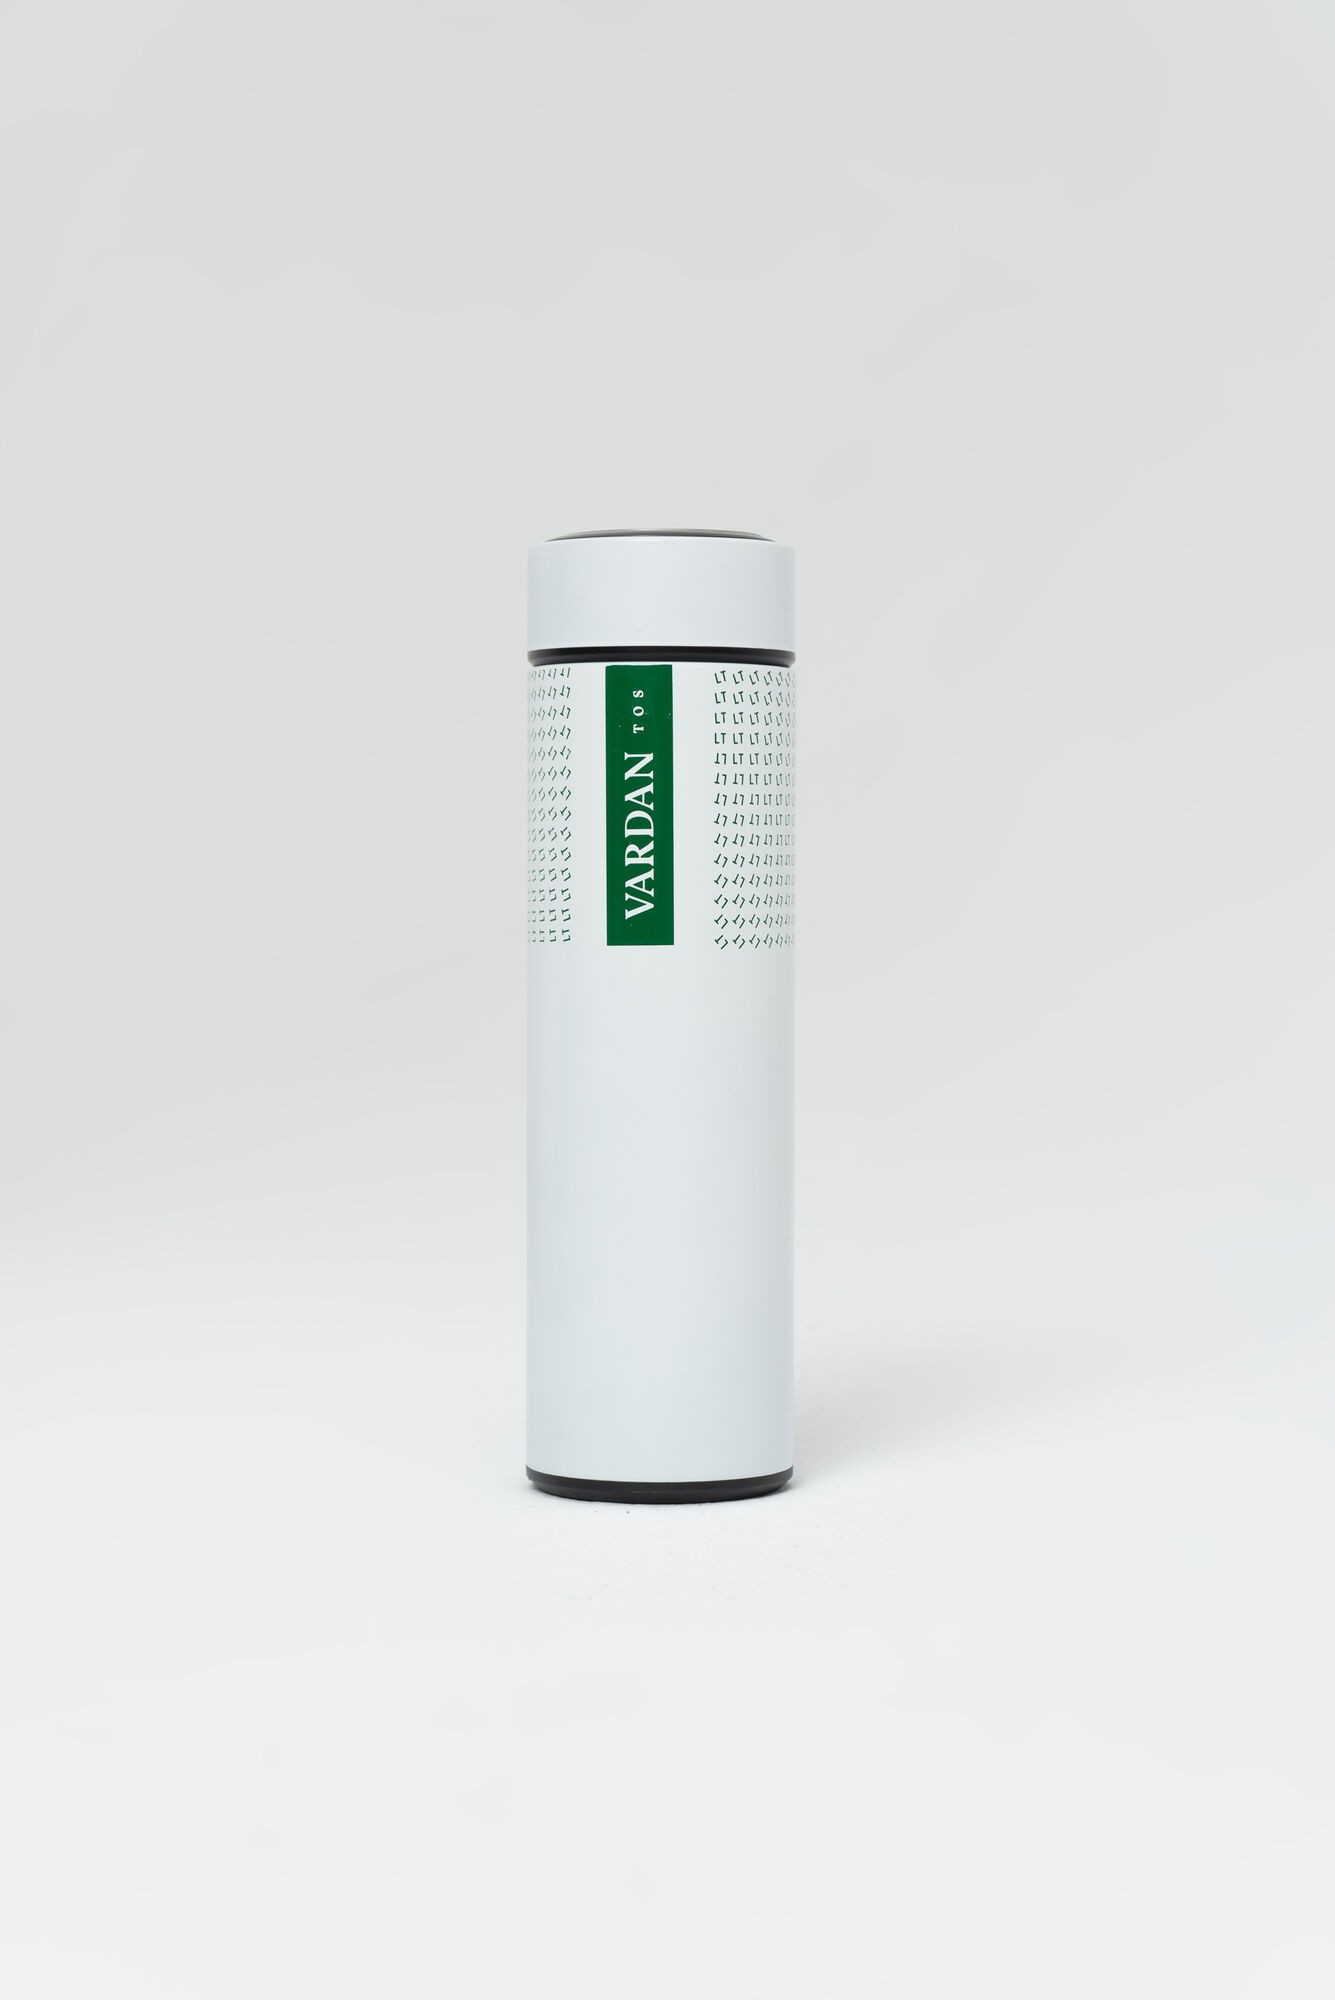 AUDIMAS VARDAN TOS termosas NOS 1-13-01 White 500ML